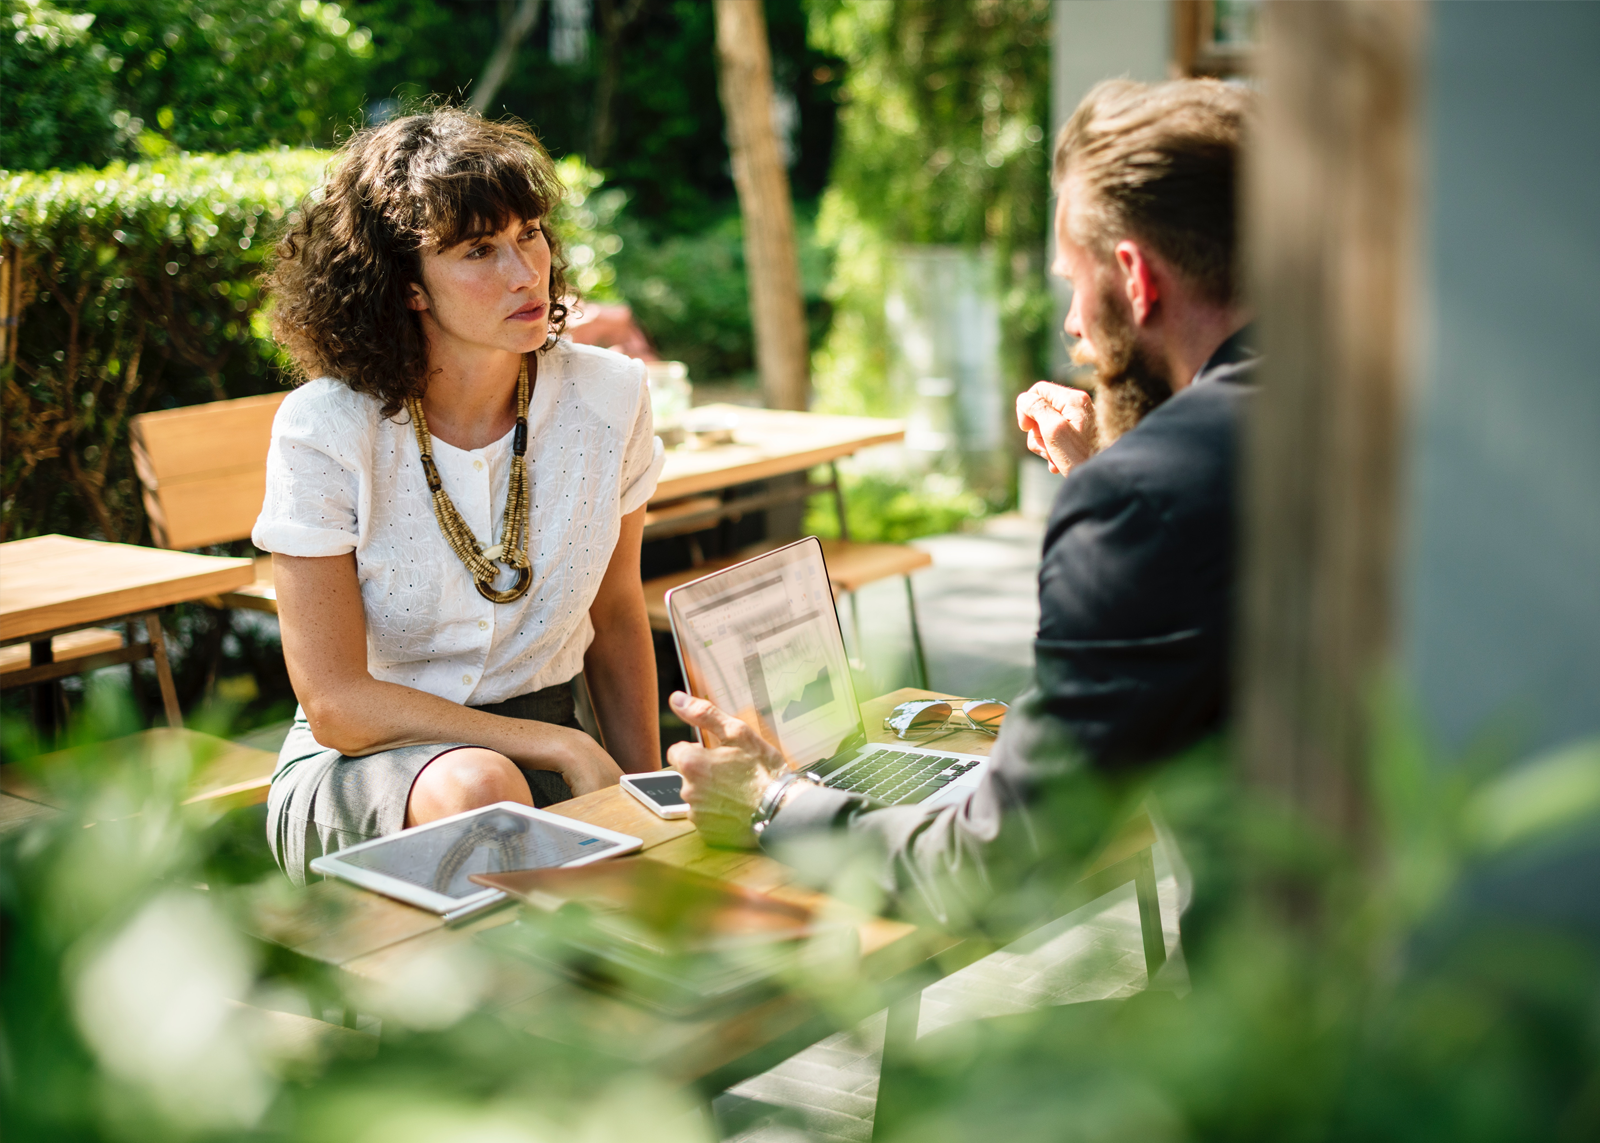 Are private equity firms unattractive to female board candidates? - Do PE firms struggle to attract female board directors? Alumni partner Catharina Mannerfelt shares insights and recommendations based on conversations with female board professionals.